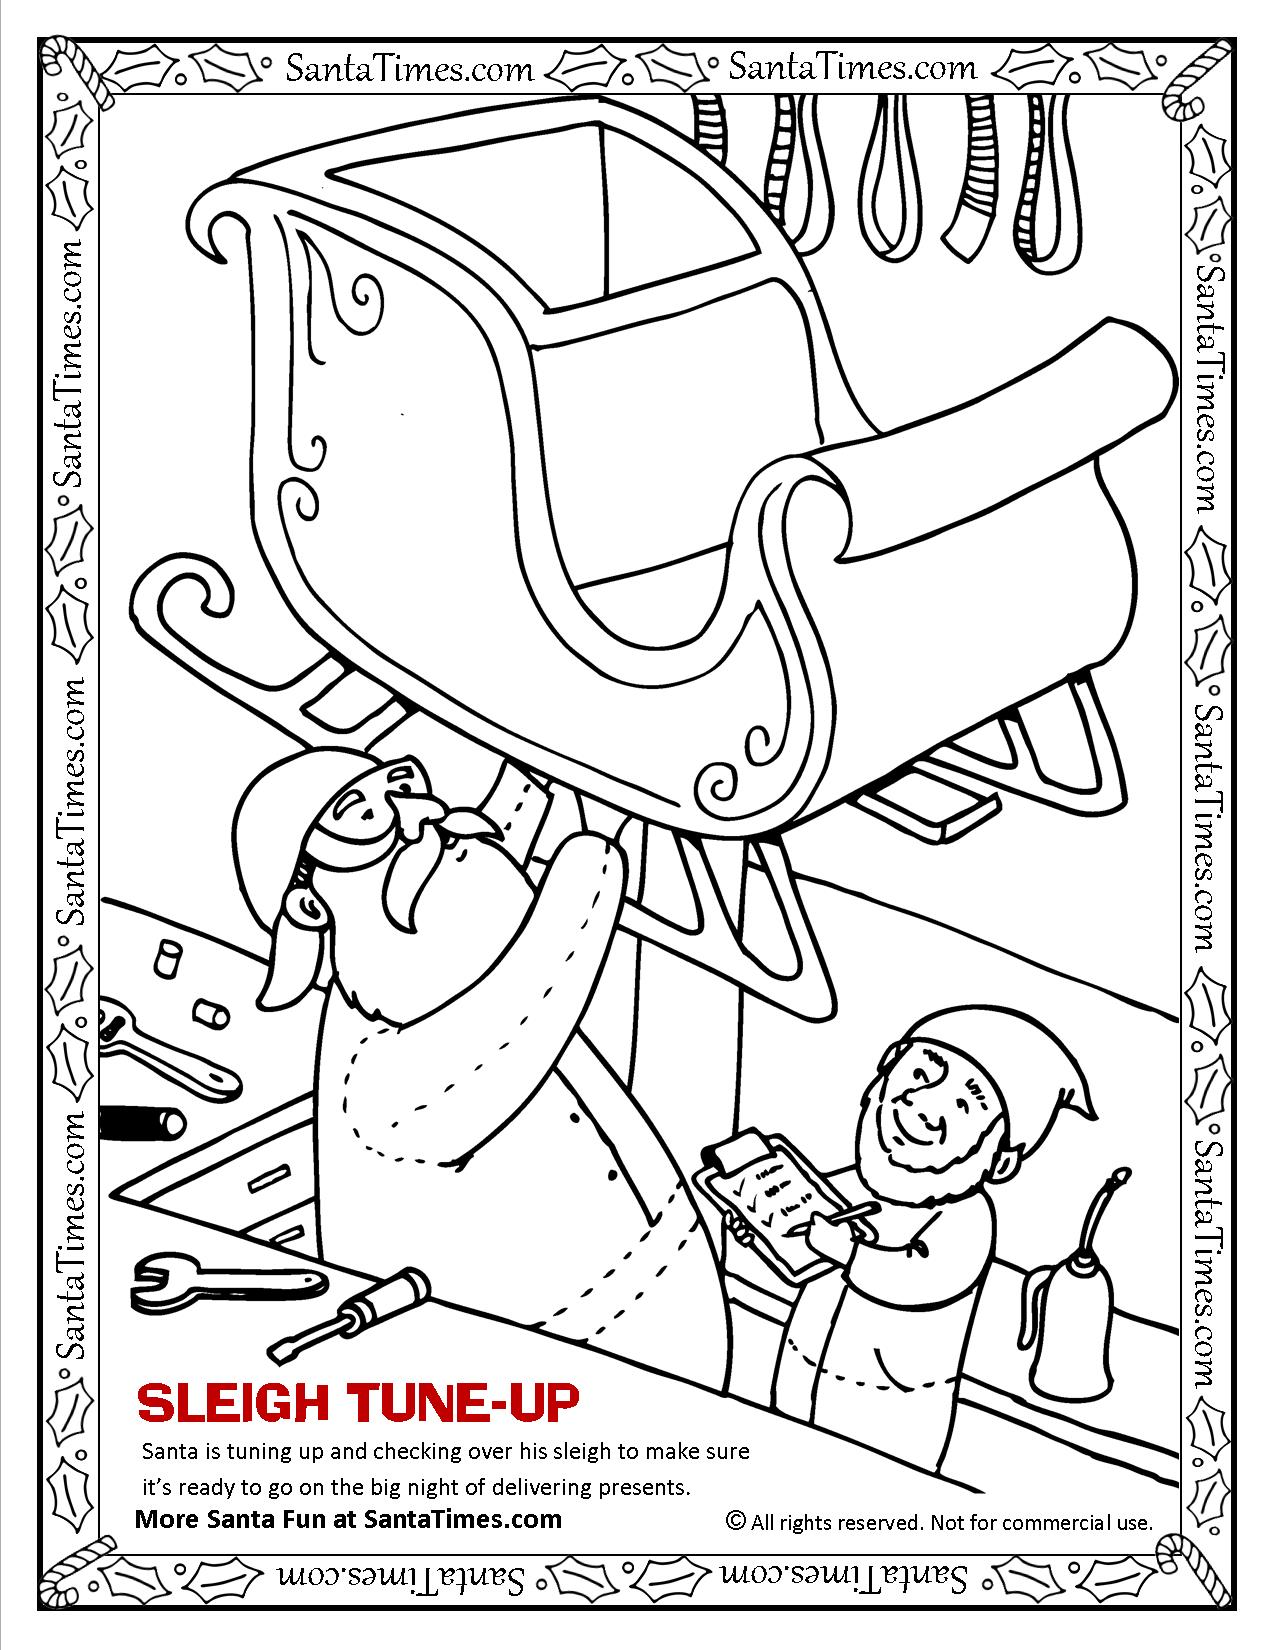 SLEIGH TUNE-UP